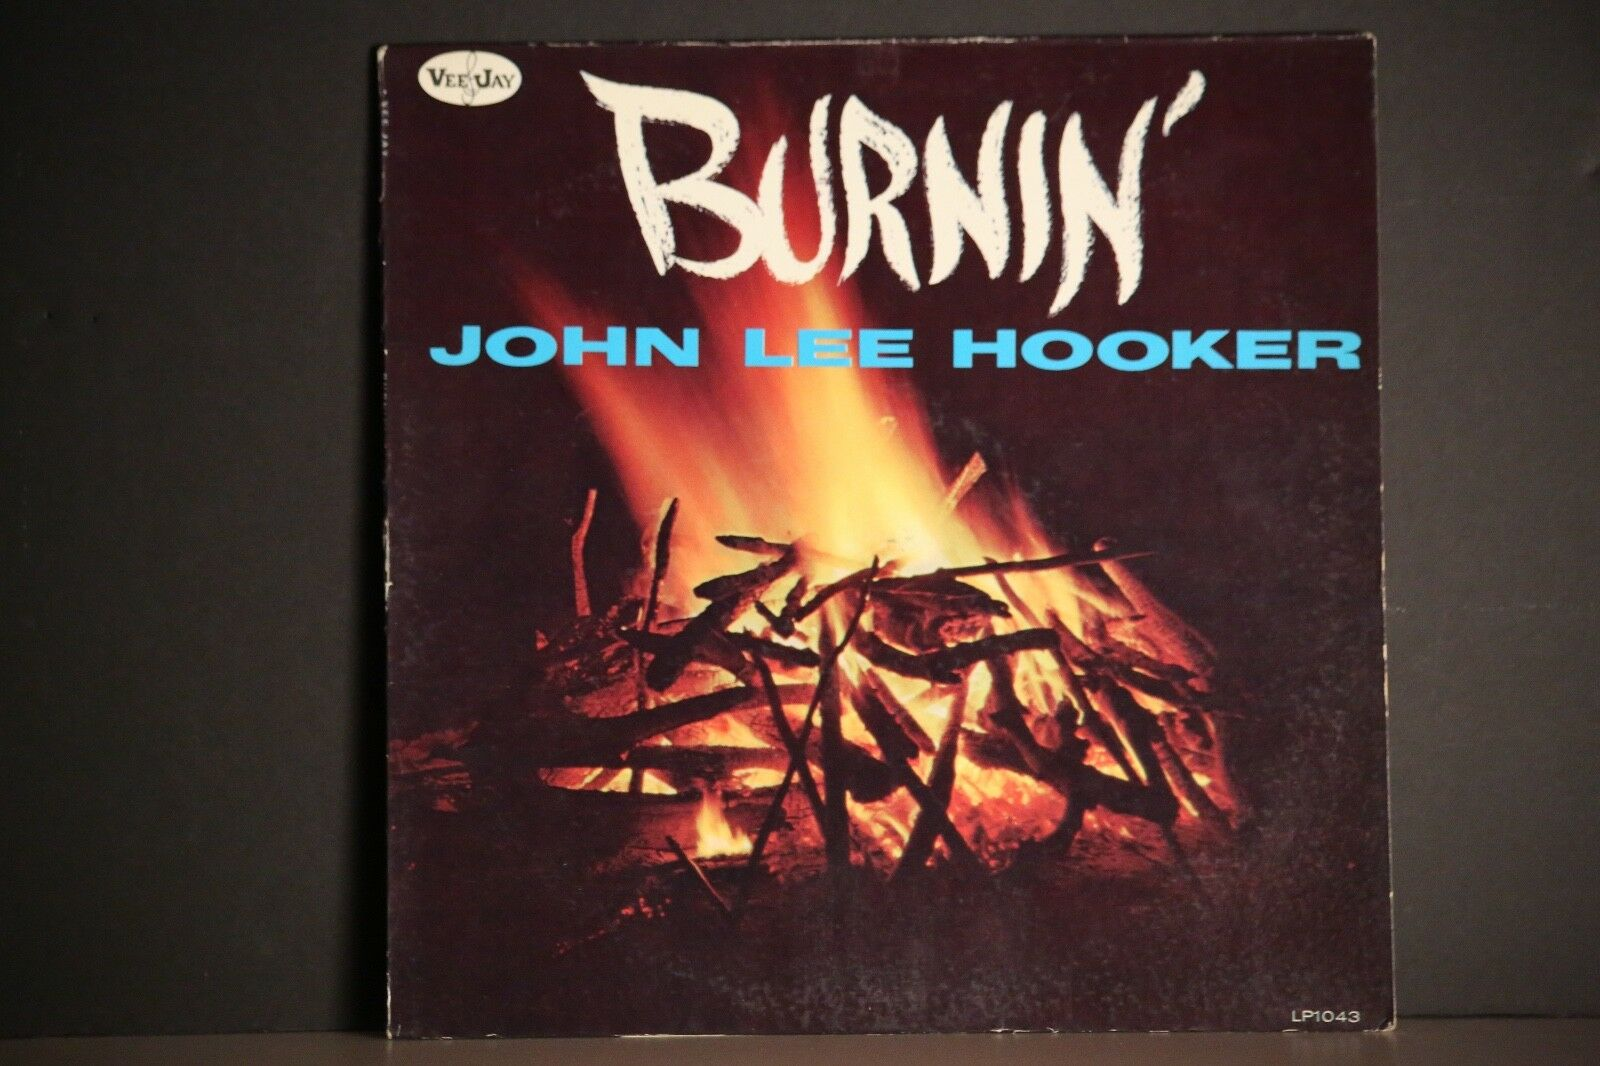 JOHN LEE HOOKER LP BURNIN' 1962 FIRST PRESS VEE JAY LP-1043.